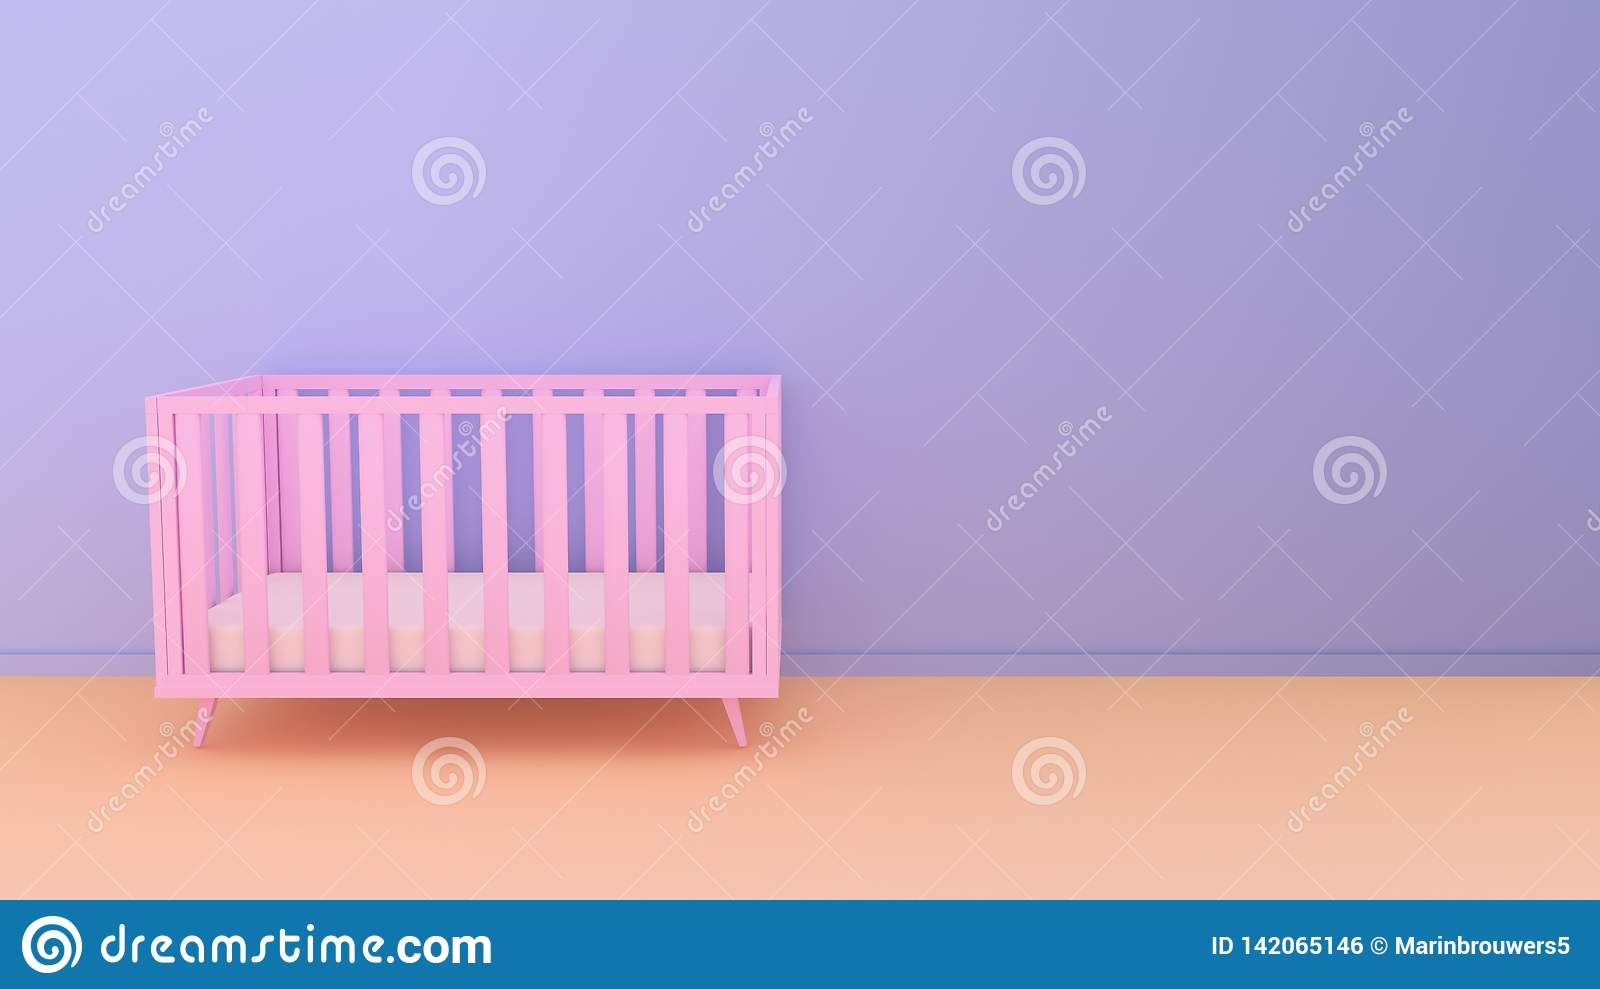 Minimalism baby room interior concept with a pink crib